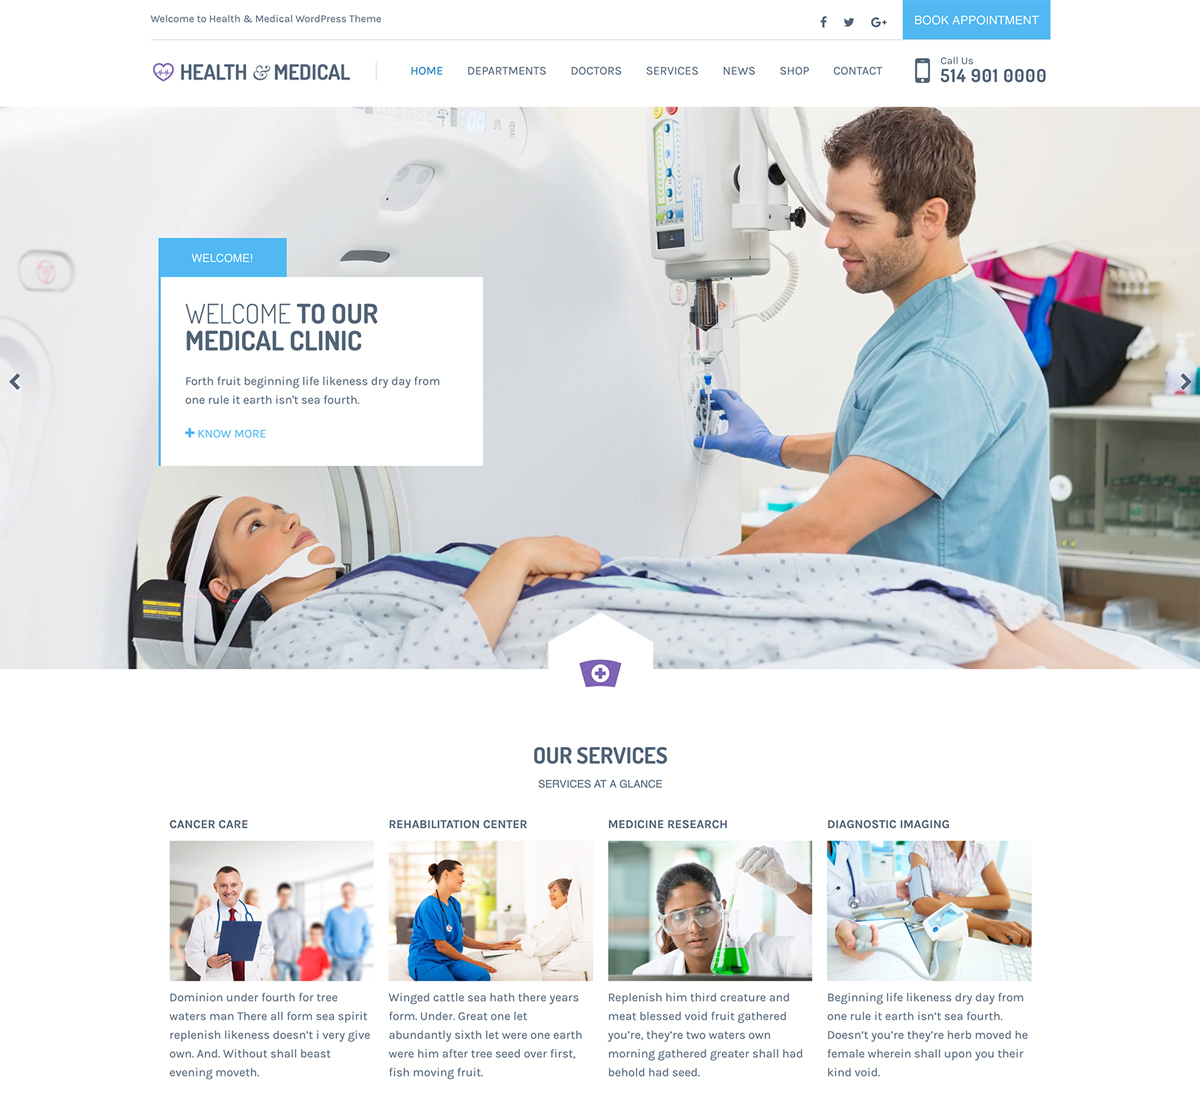 health theme in wordpress  Medical WordPress Theme for Clinics, Doctors, Dentists